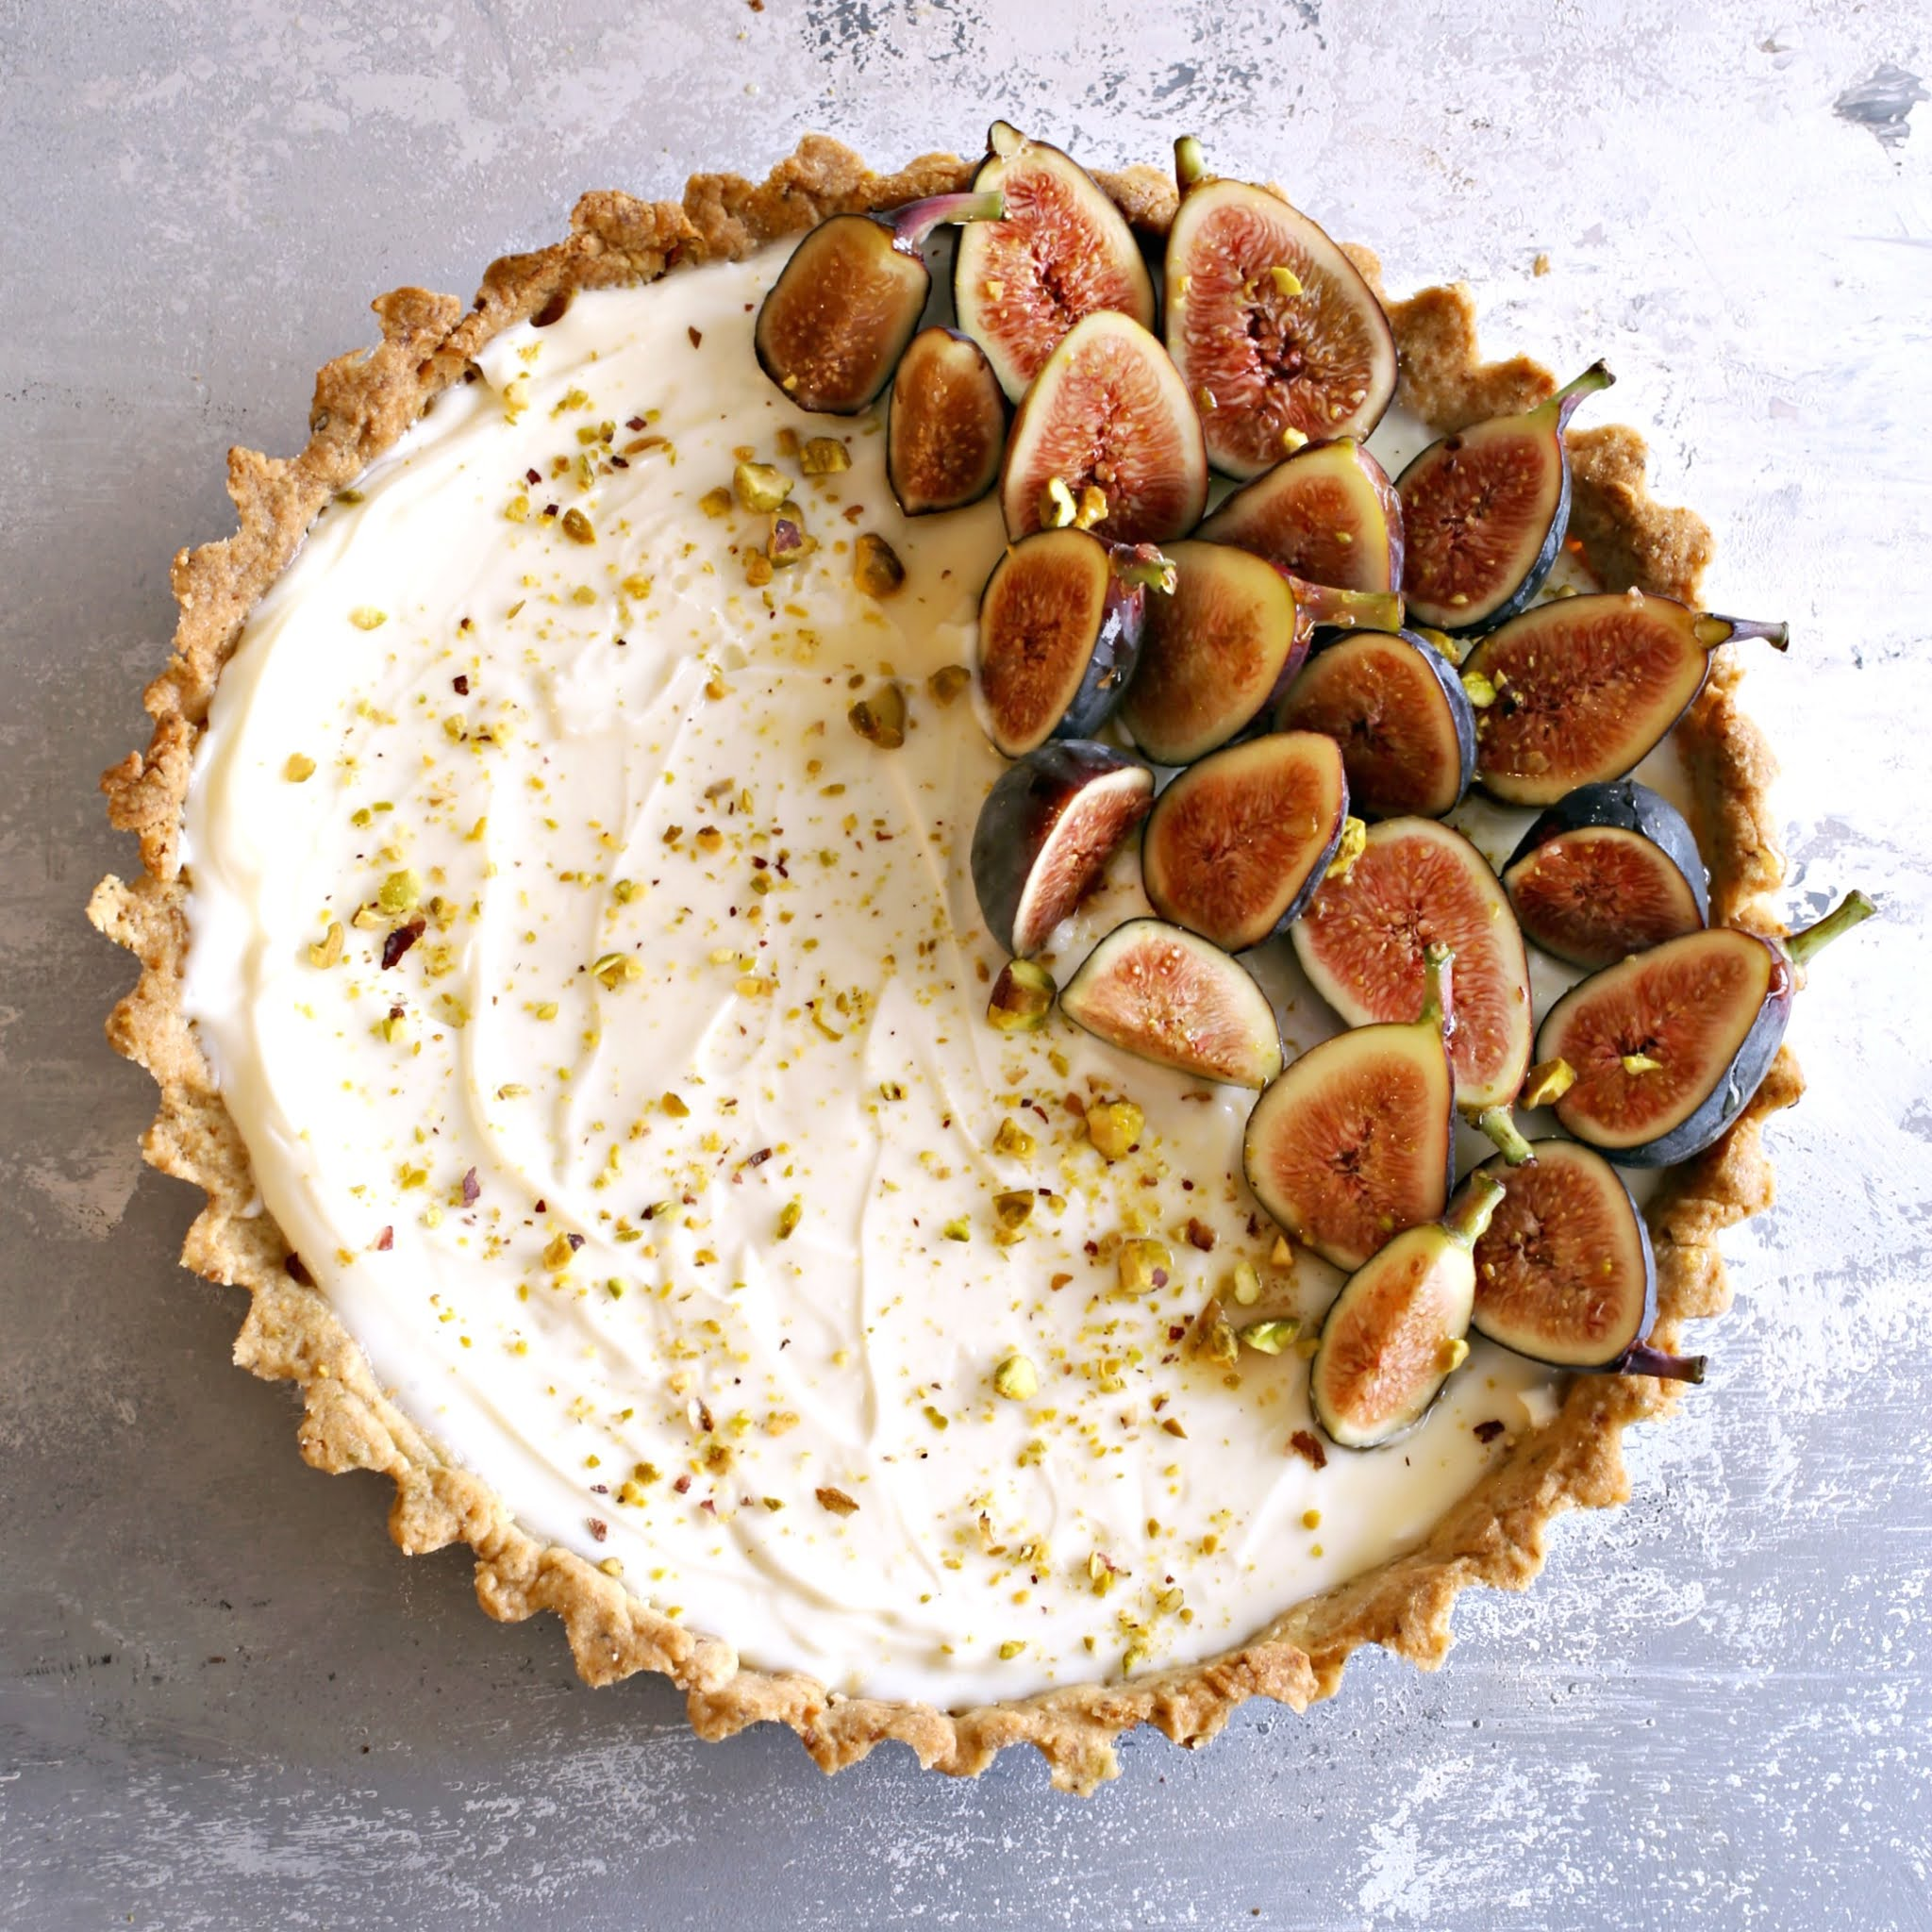 Recipe for a tart with pistachio crust, no-bake cheesecake filling and honey glazed figs.